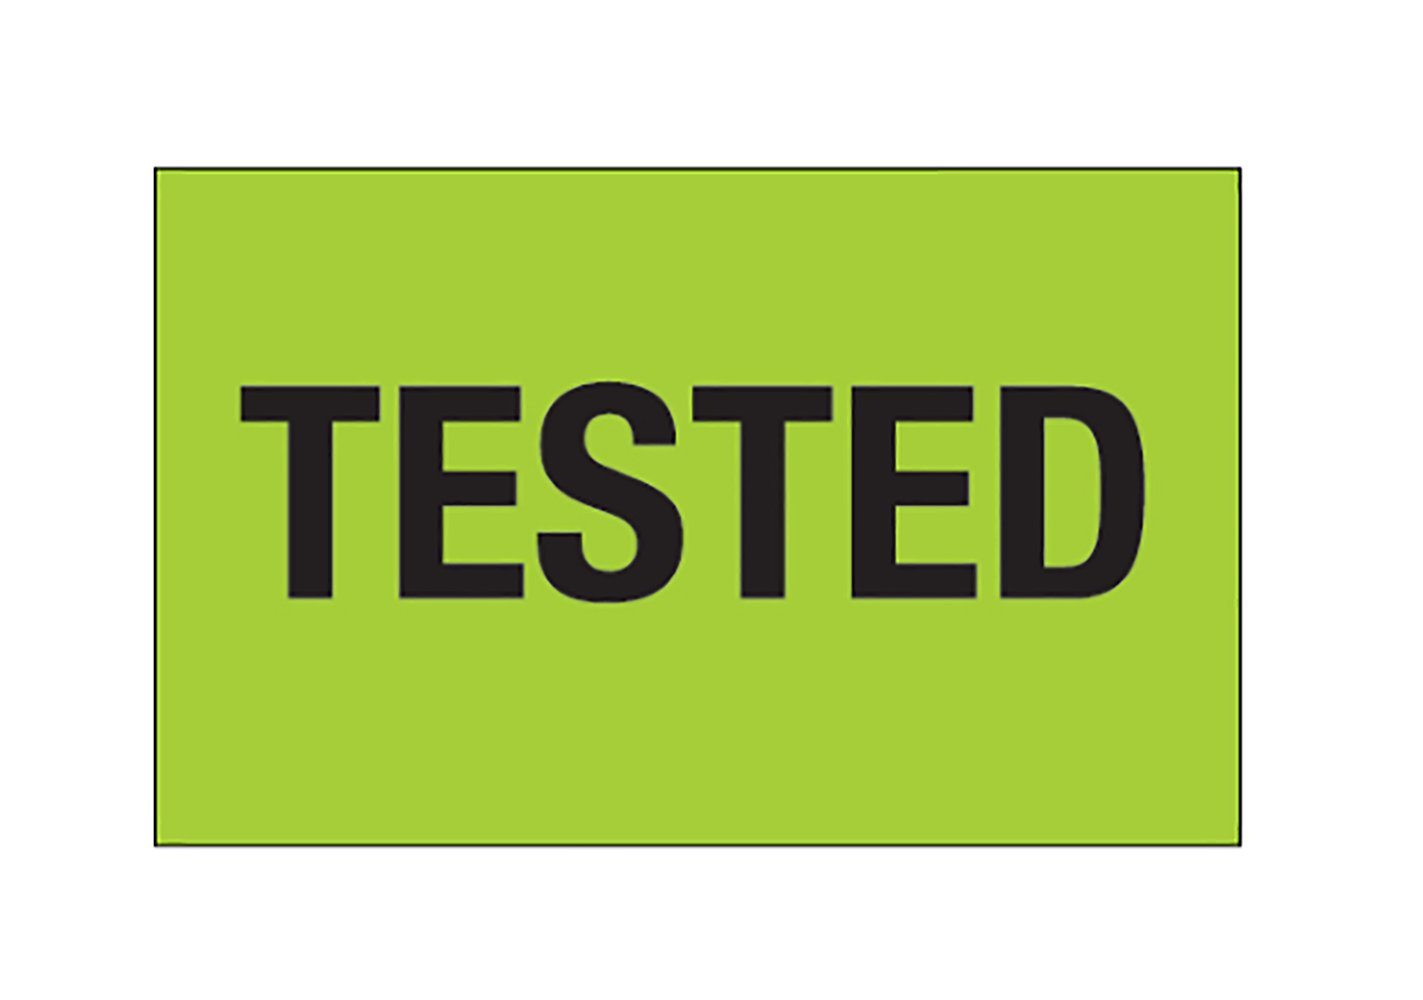 RetailSource DL1159x1 1 1/4 x 2 -Tested, (Fluorescent Green) Labels, 1.5' Height, 3.5' Length, 3.5' Width (Pack of 500) 1.5 Height 3.5 Length 3.5 Width (Pack of 500) RetailSource Ltd